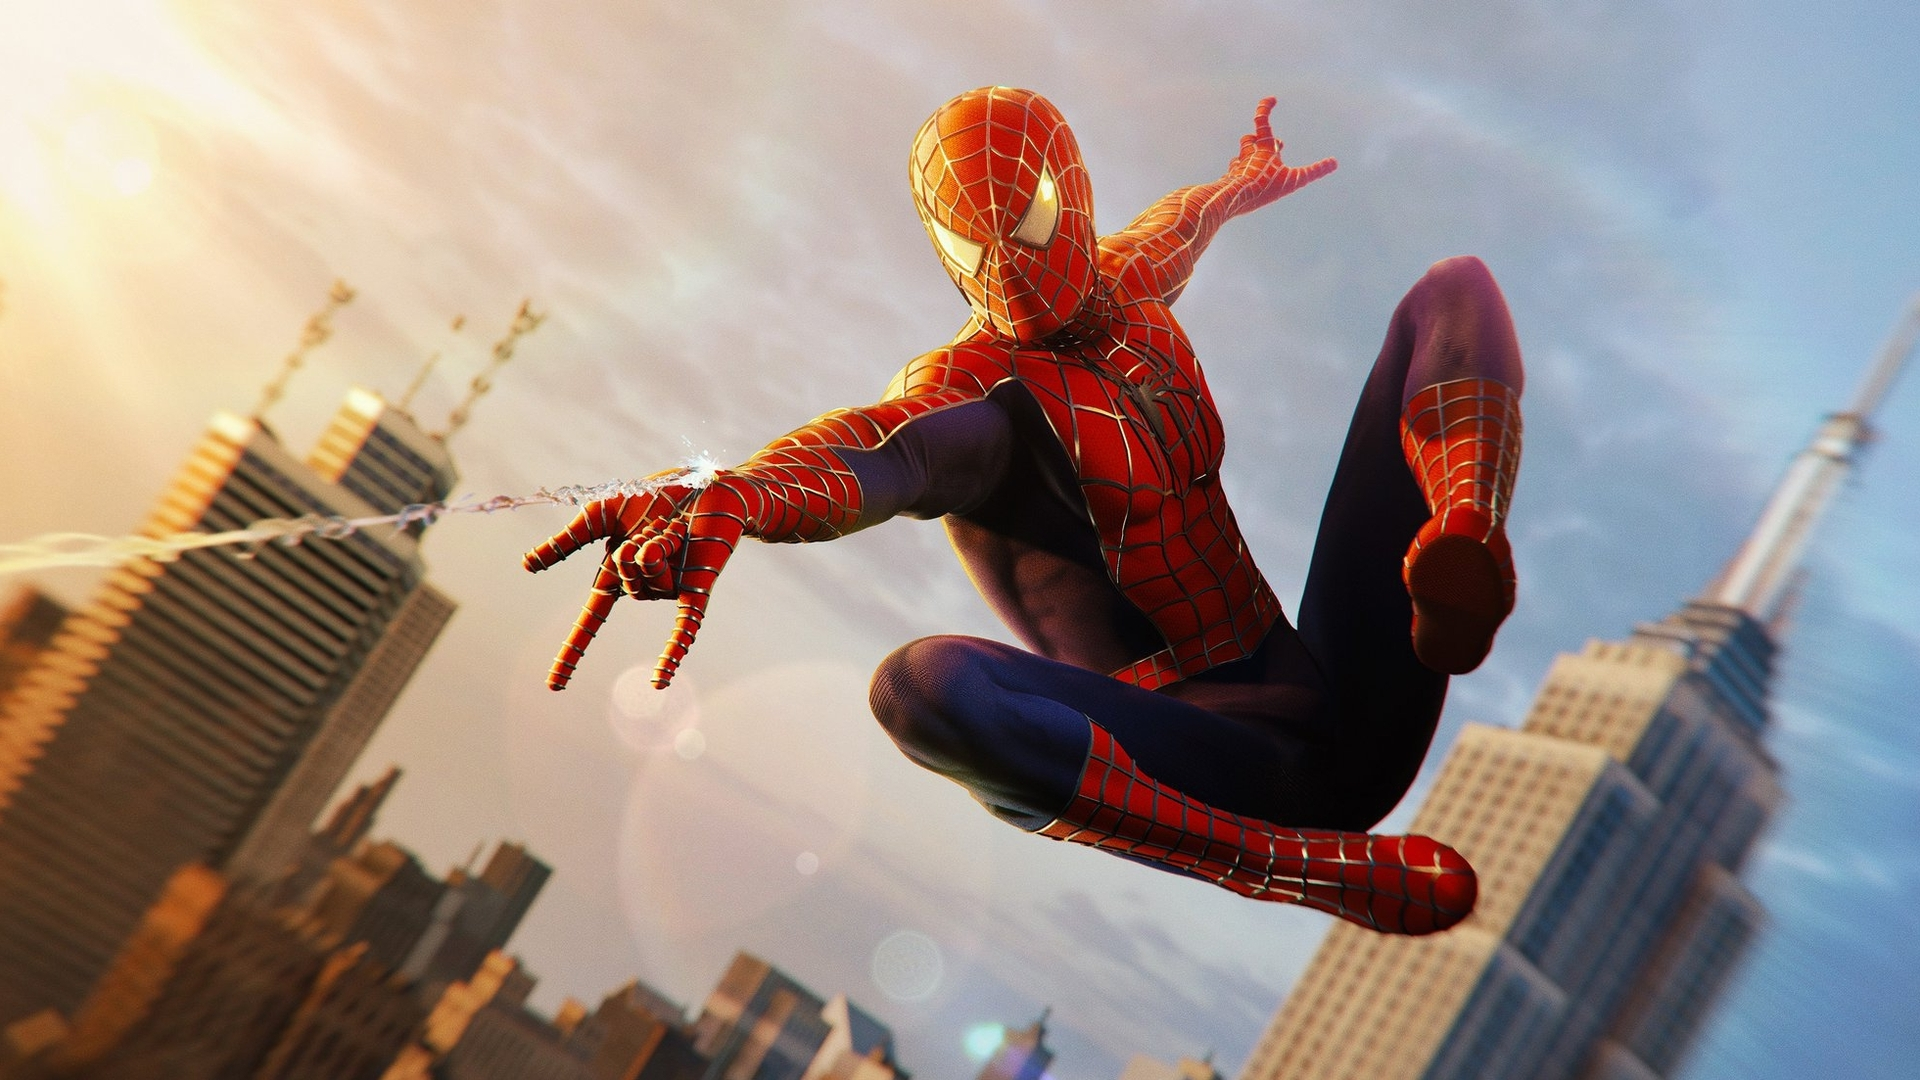 Spider Man Ps4 Gets Sam Raimi Suit For Free Eurogamer Net